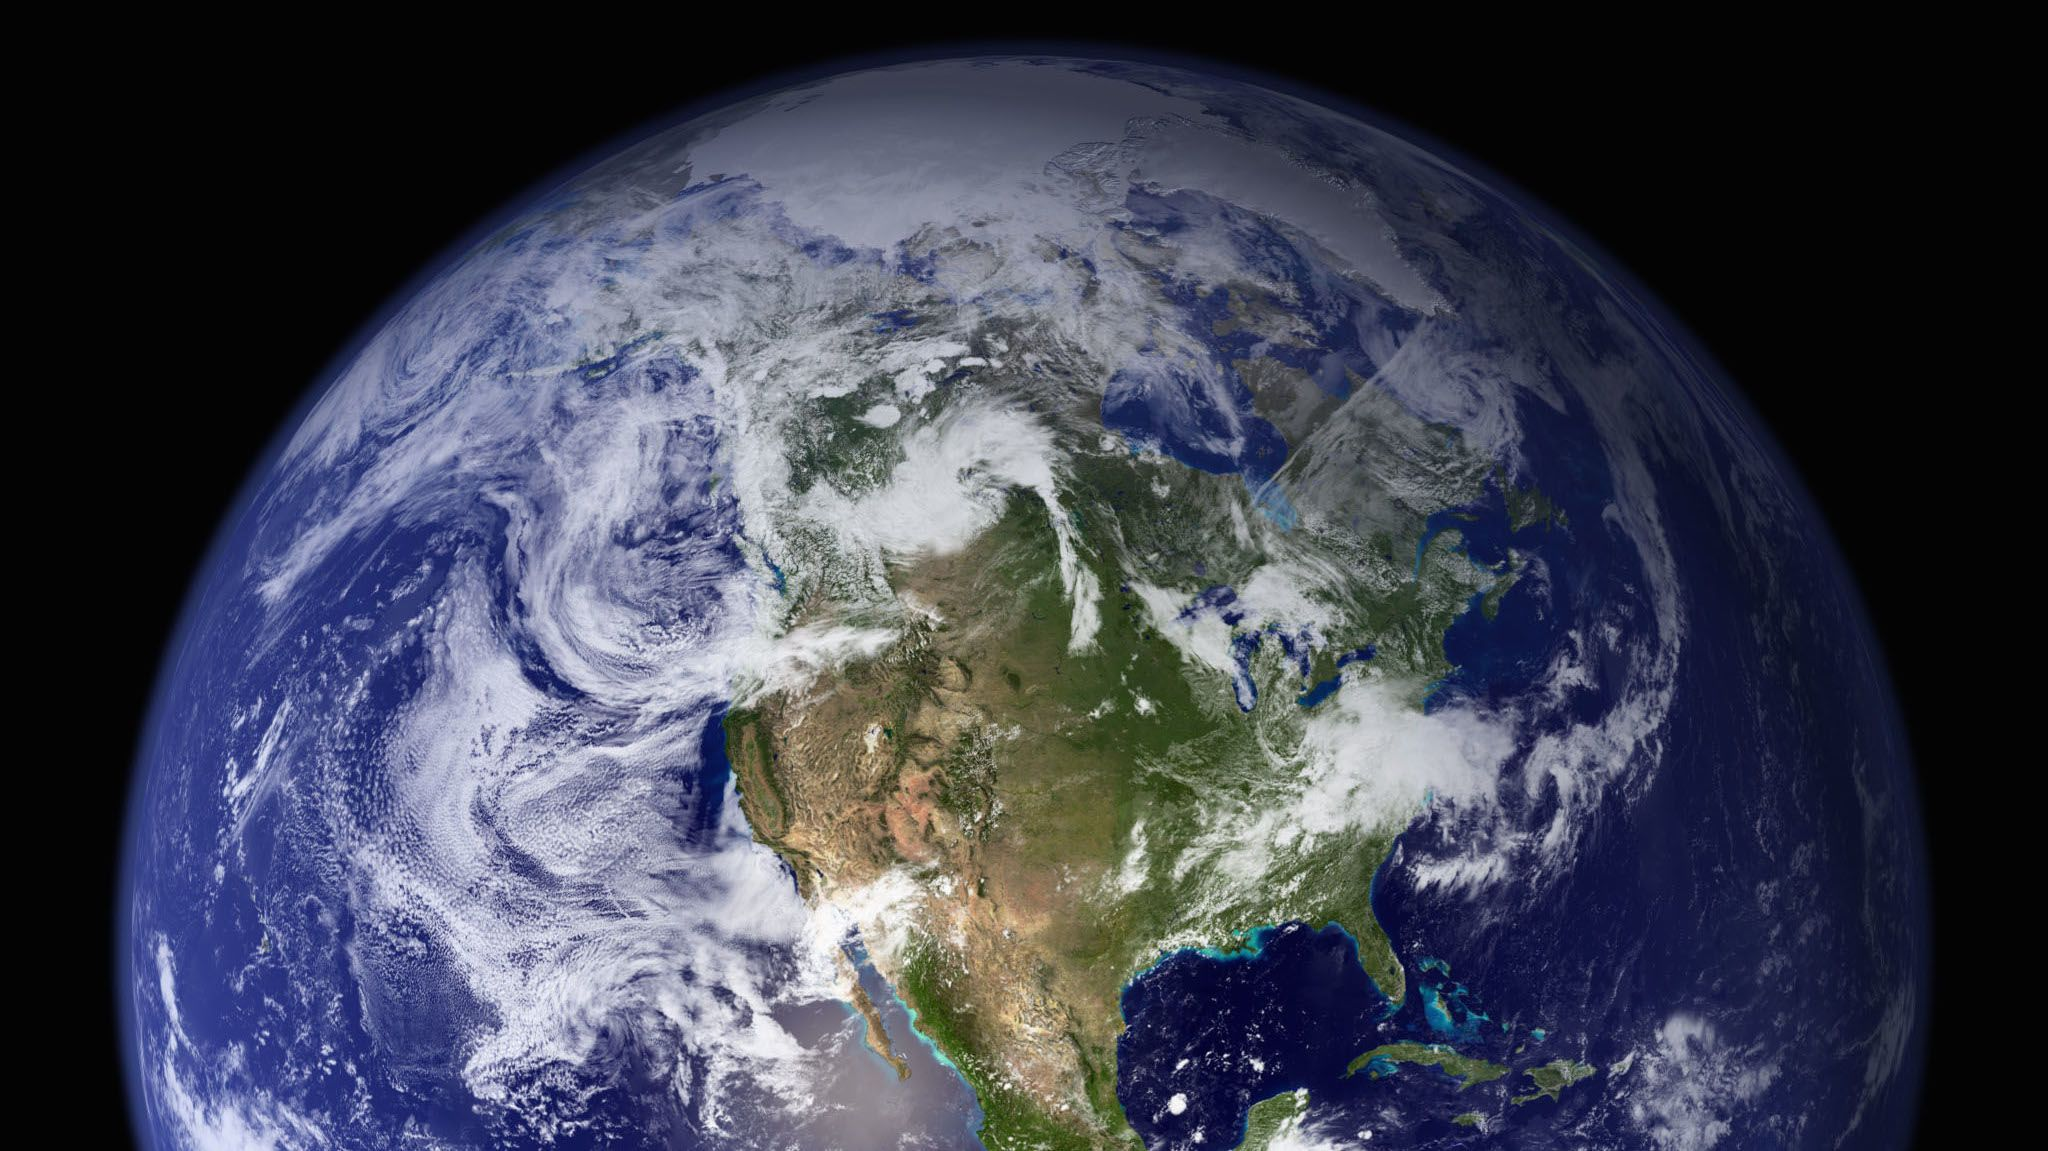 The western hemisphere of the Blue Marble, created in 2002.